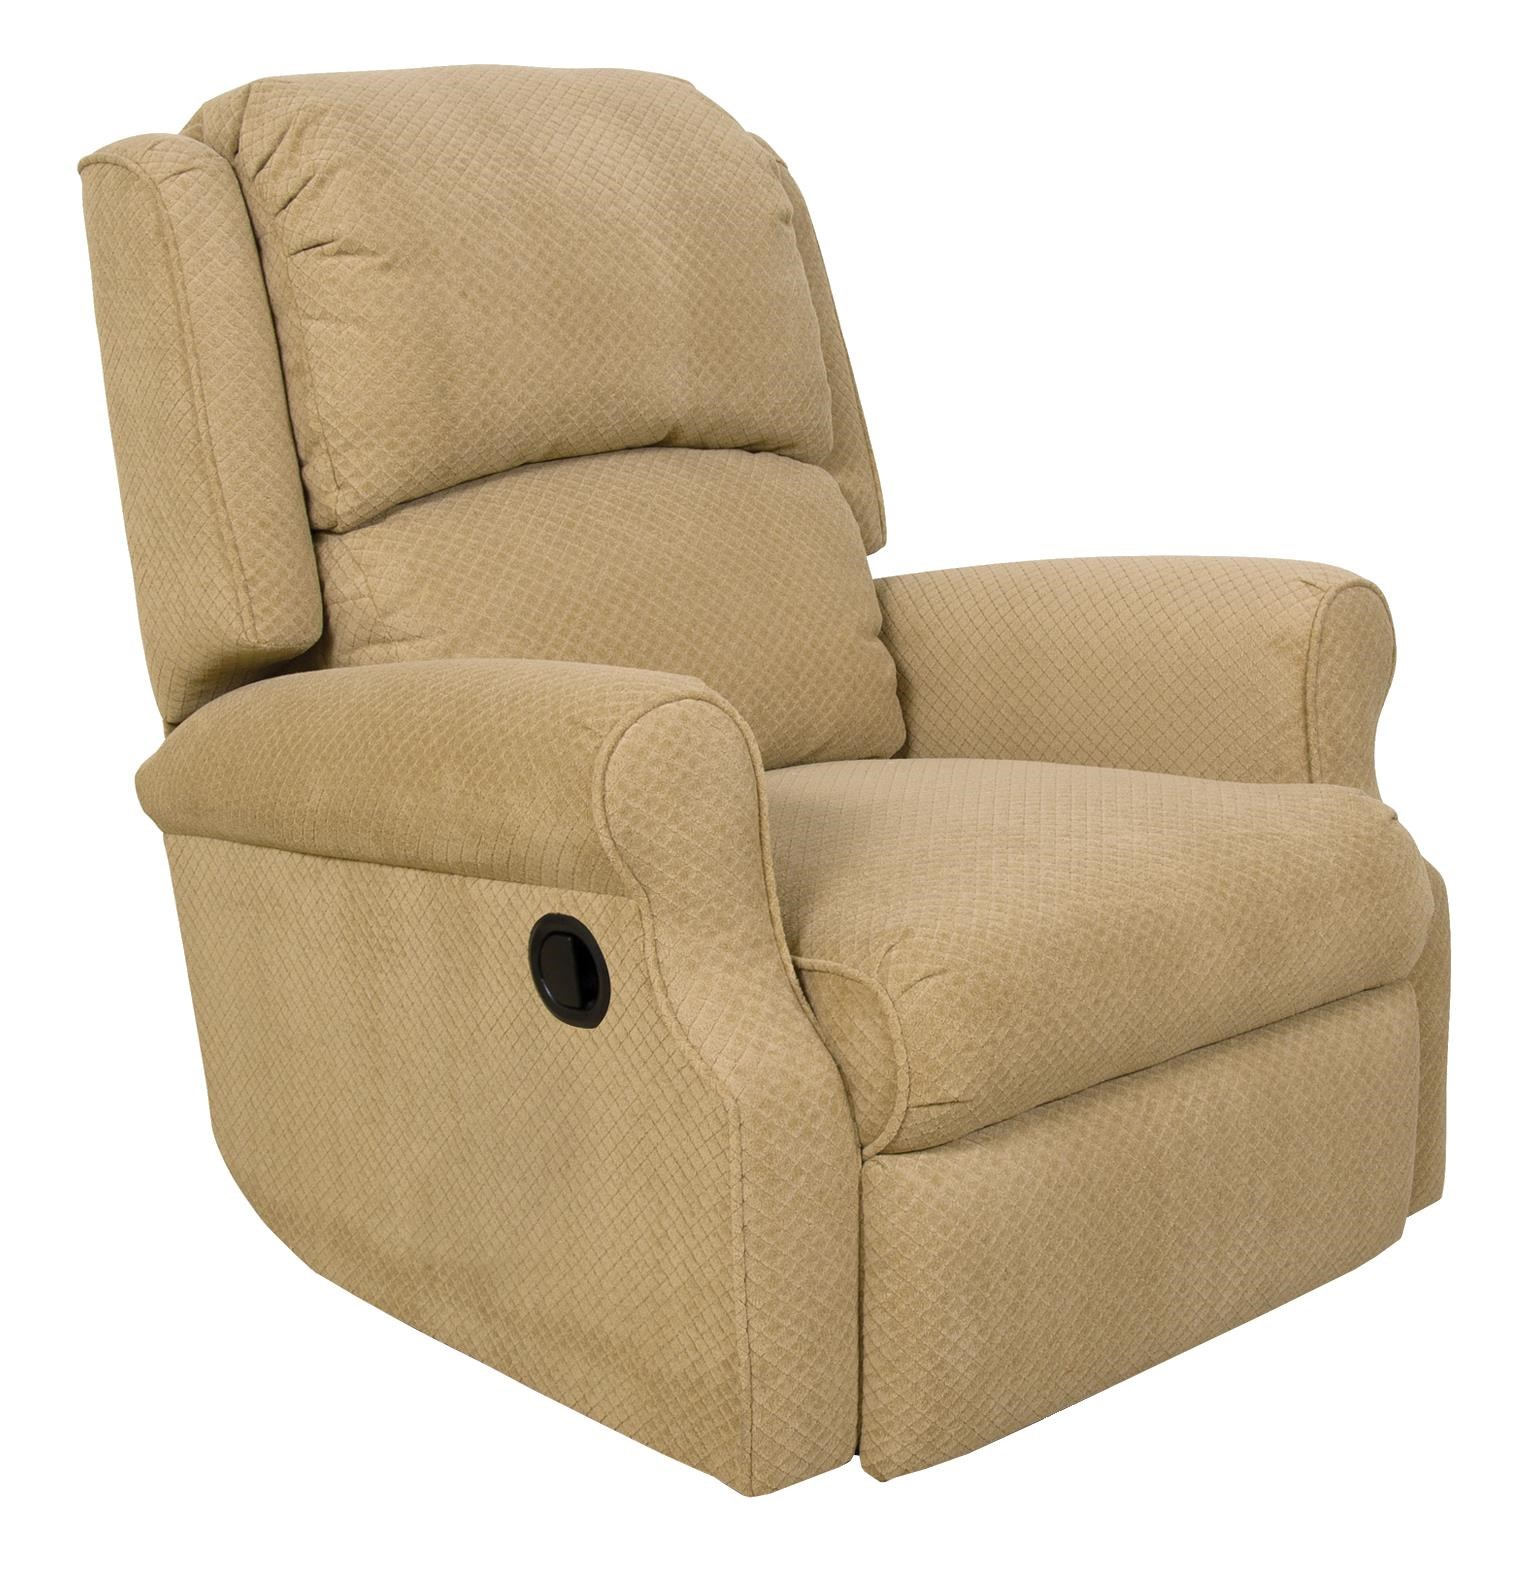 Casual Styled Minimum Proximity Recliner with Power for Comfortable Living Rooms